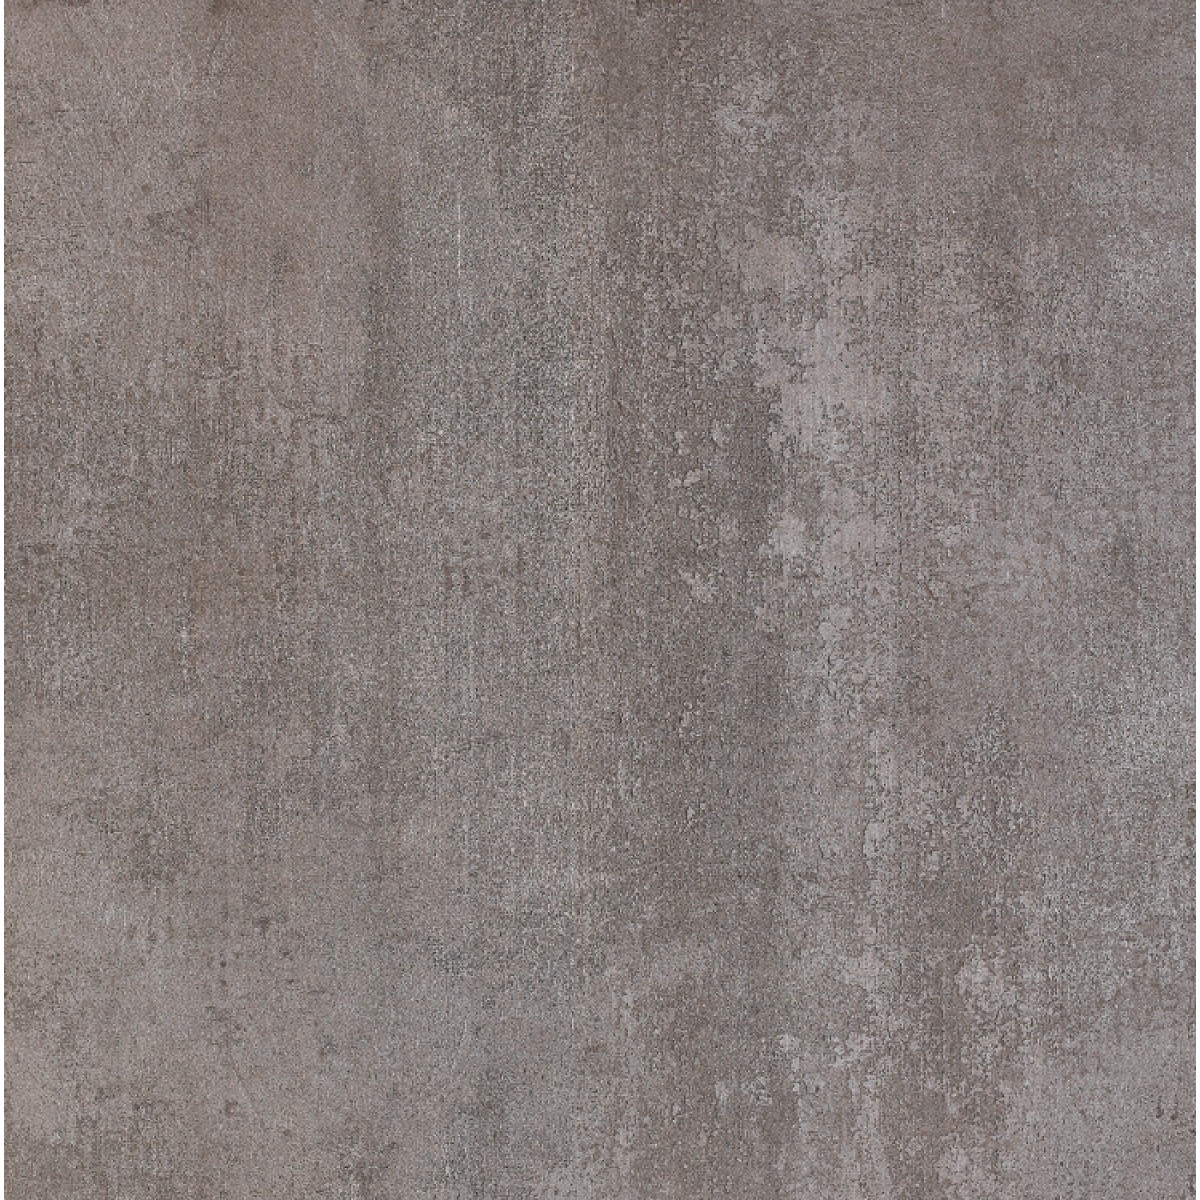 *Concrete* Dark Grey matt 60x60x2cm